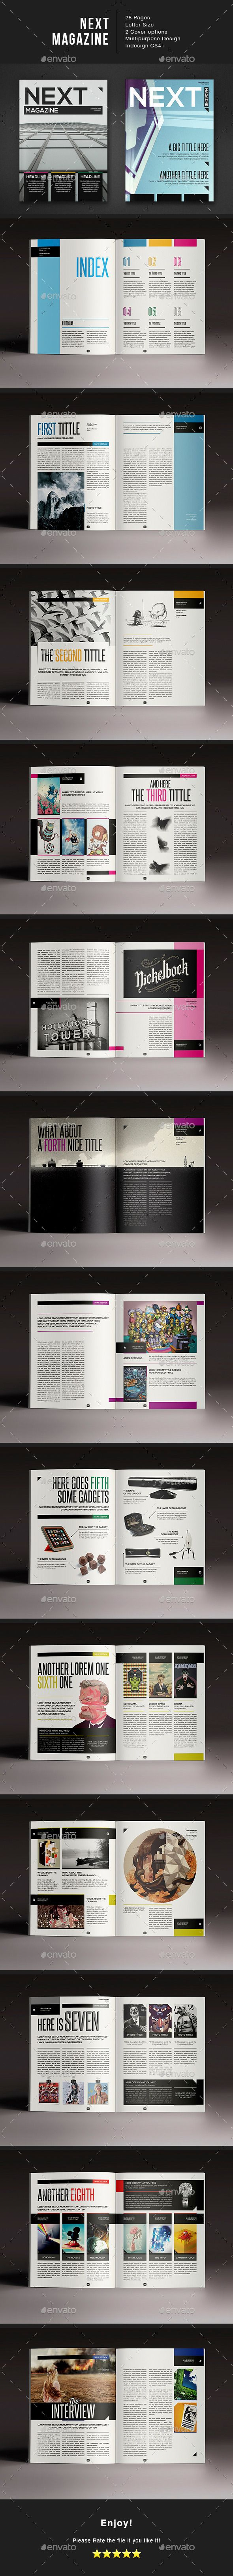 Next Magazine Indesign Template Indesign Templates Magazines And